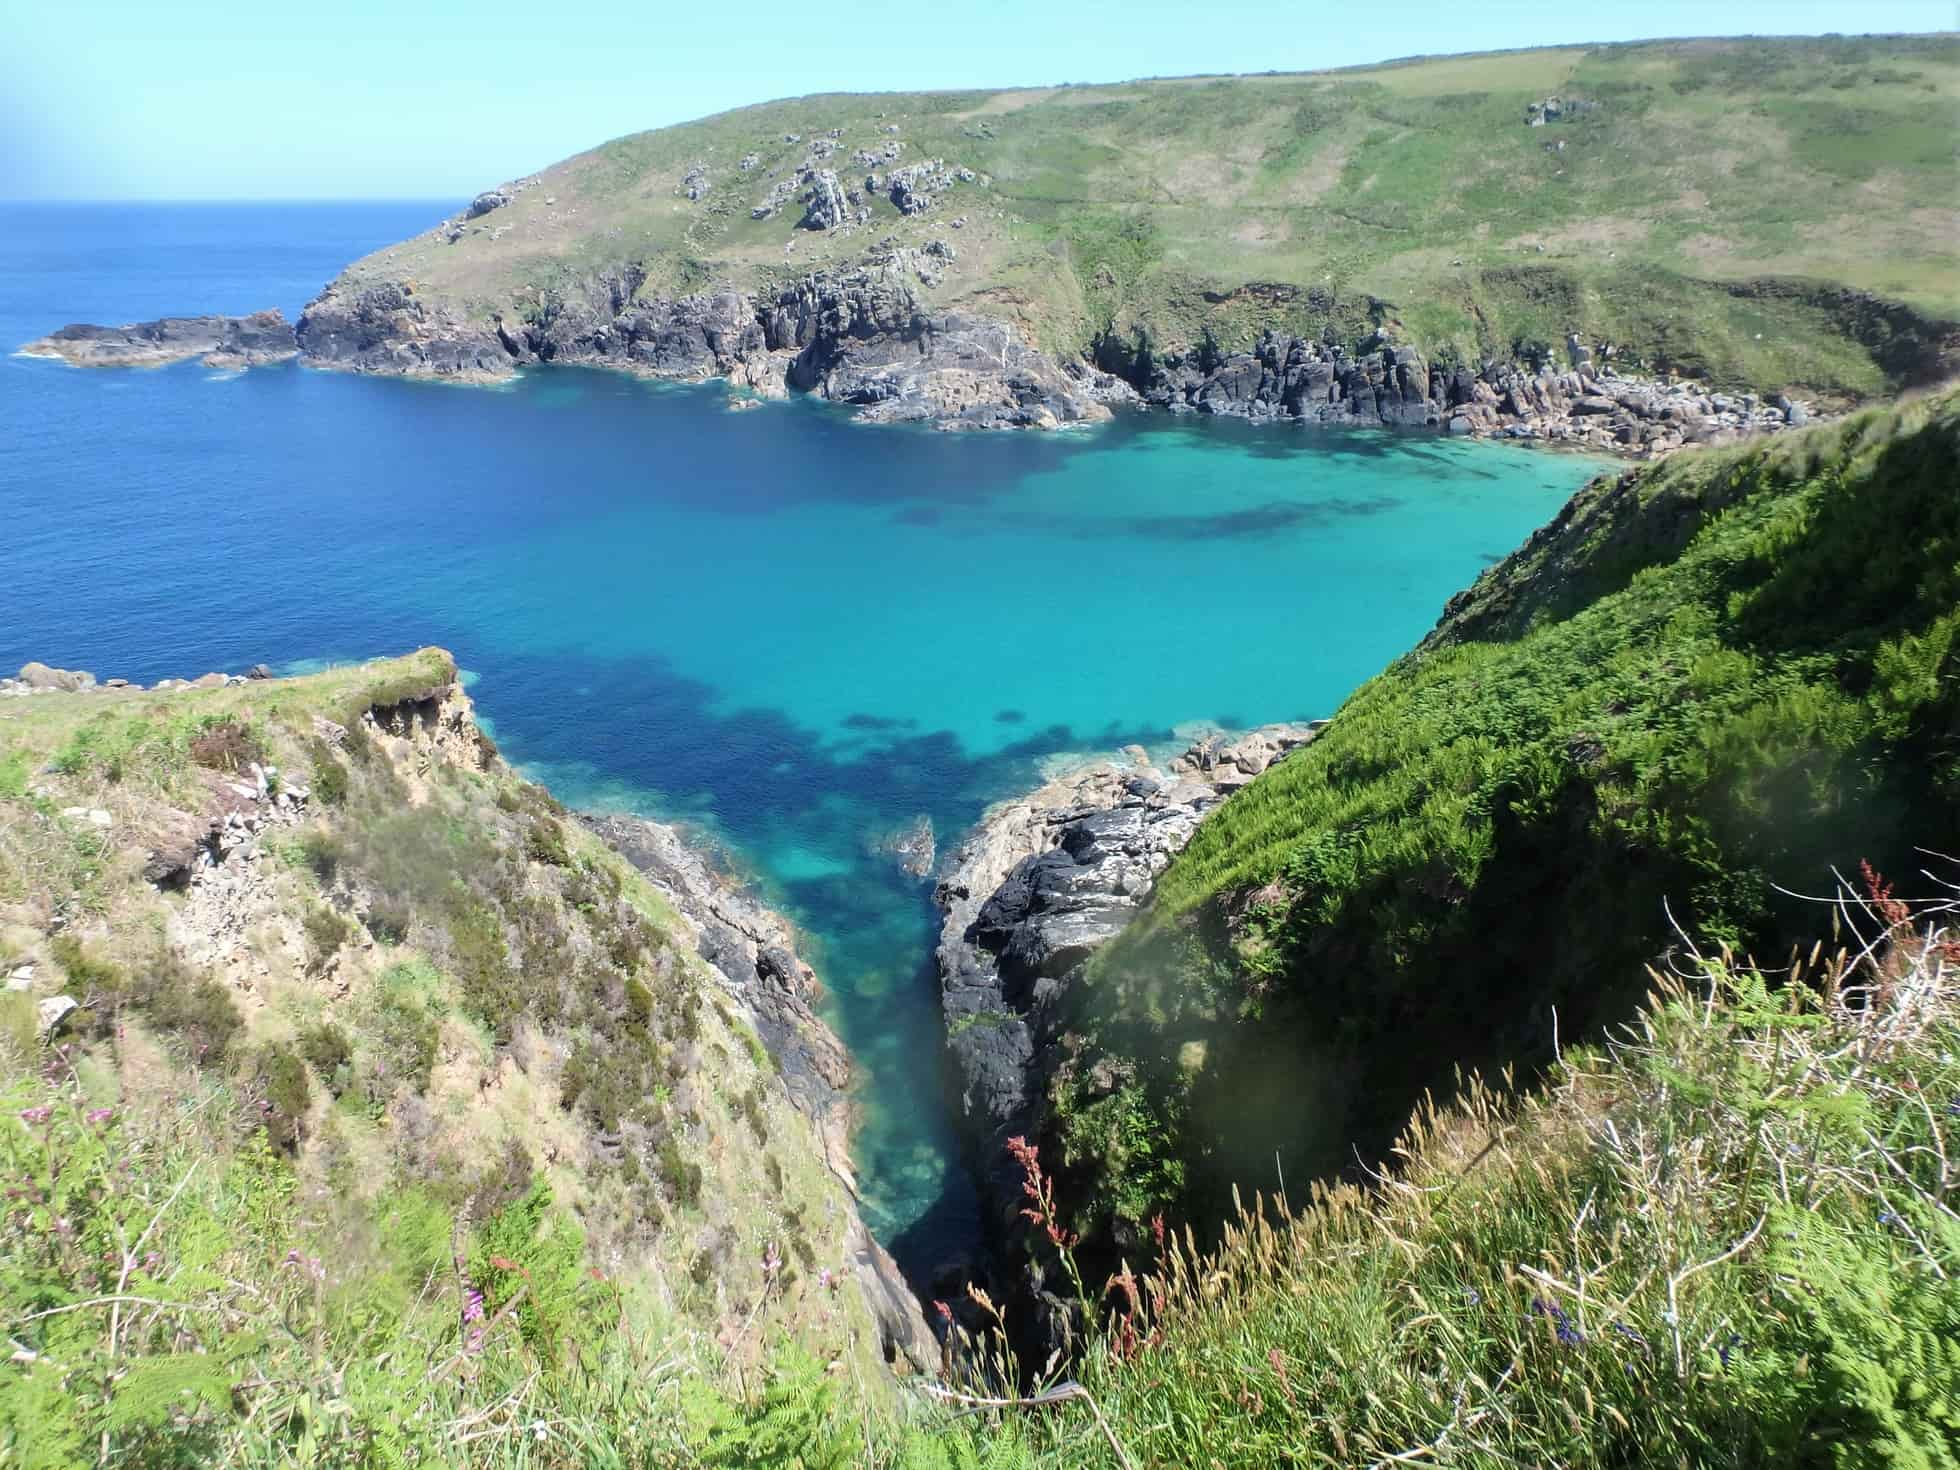 Porthmeor Cove, near Zennor and St. Ives, Cornwall